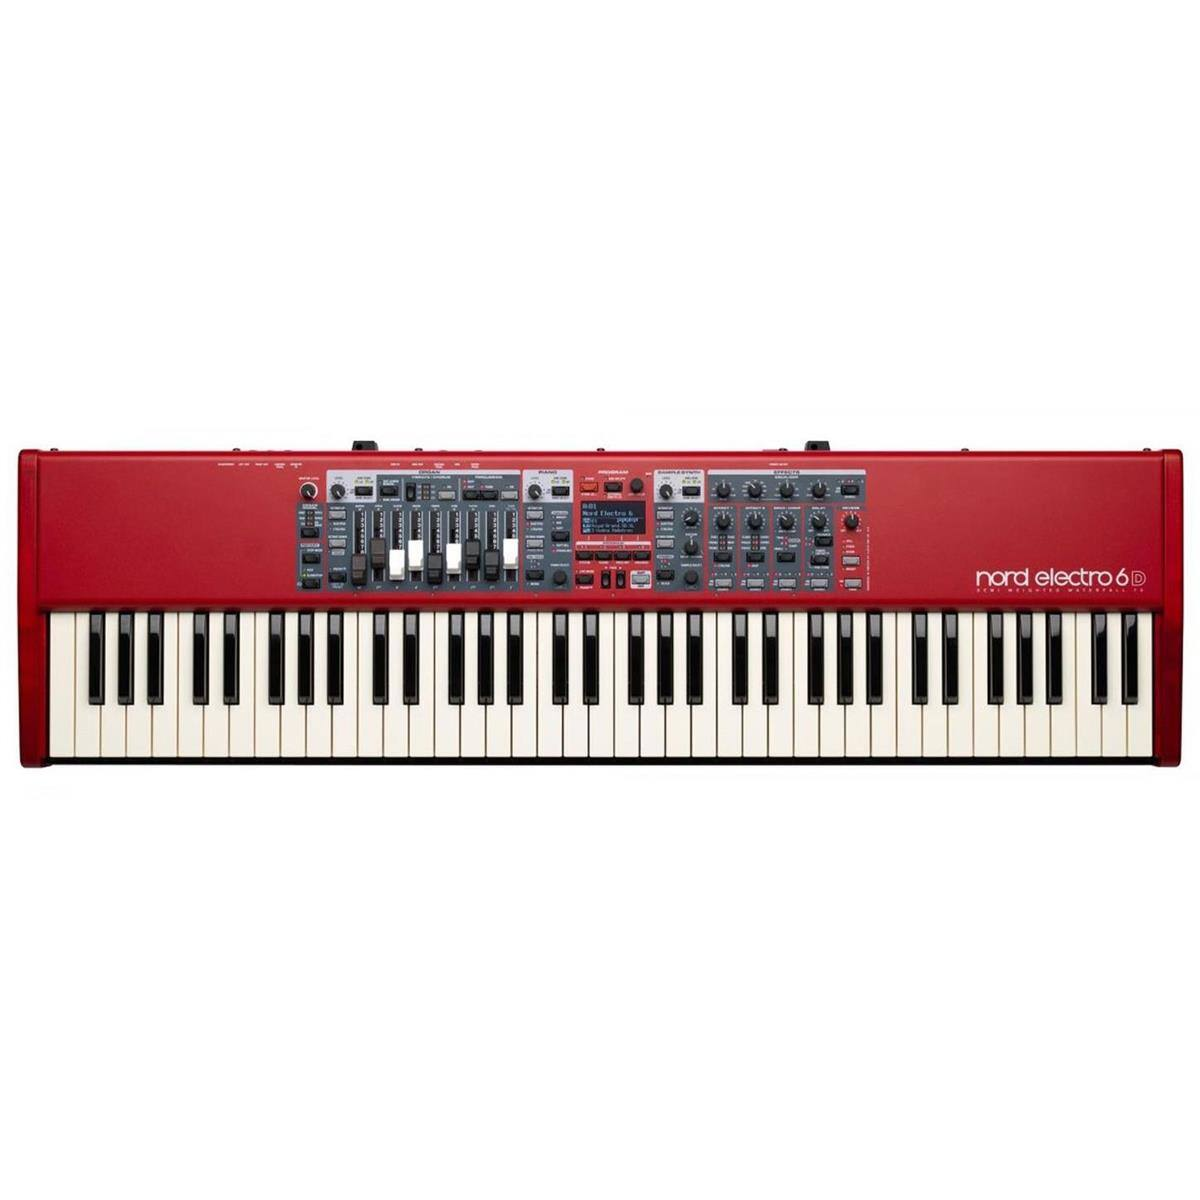 NORD Electro 6D 73-Note Semi-Weighted Waterfall Keyboard $1899 + free s/h